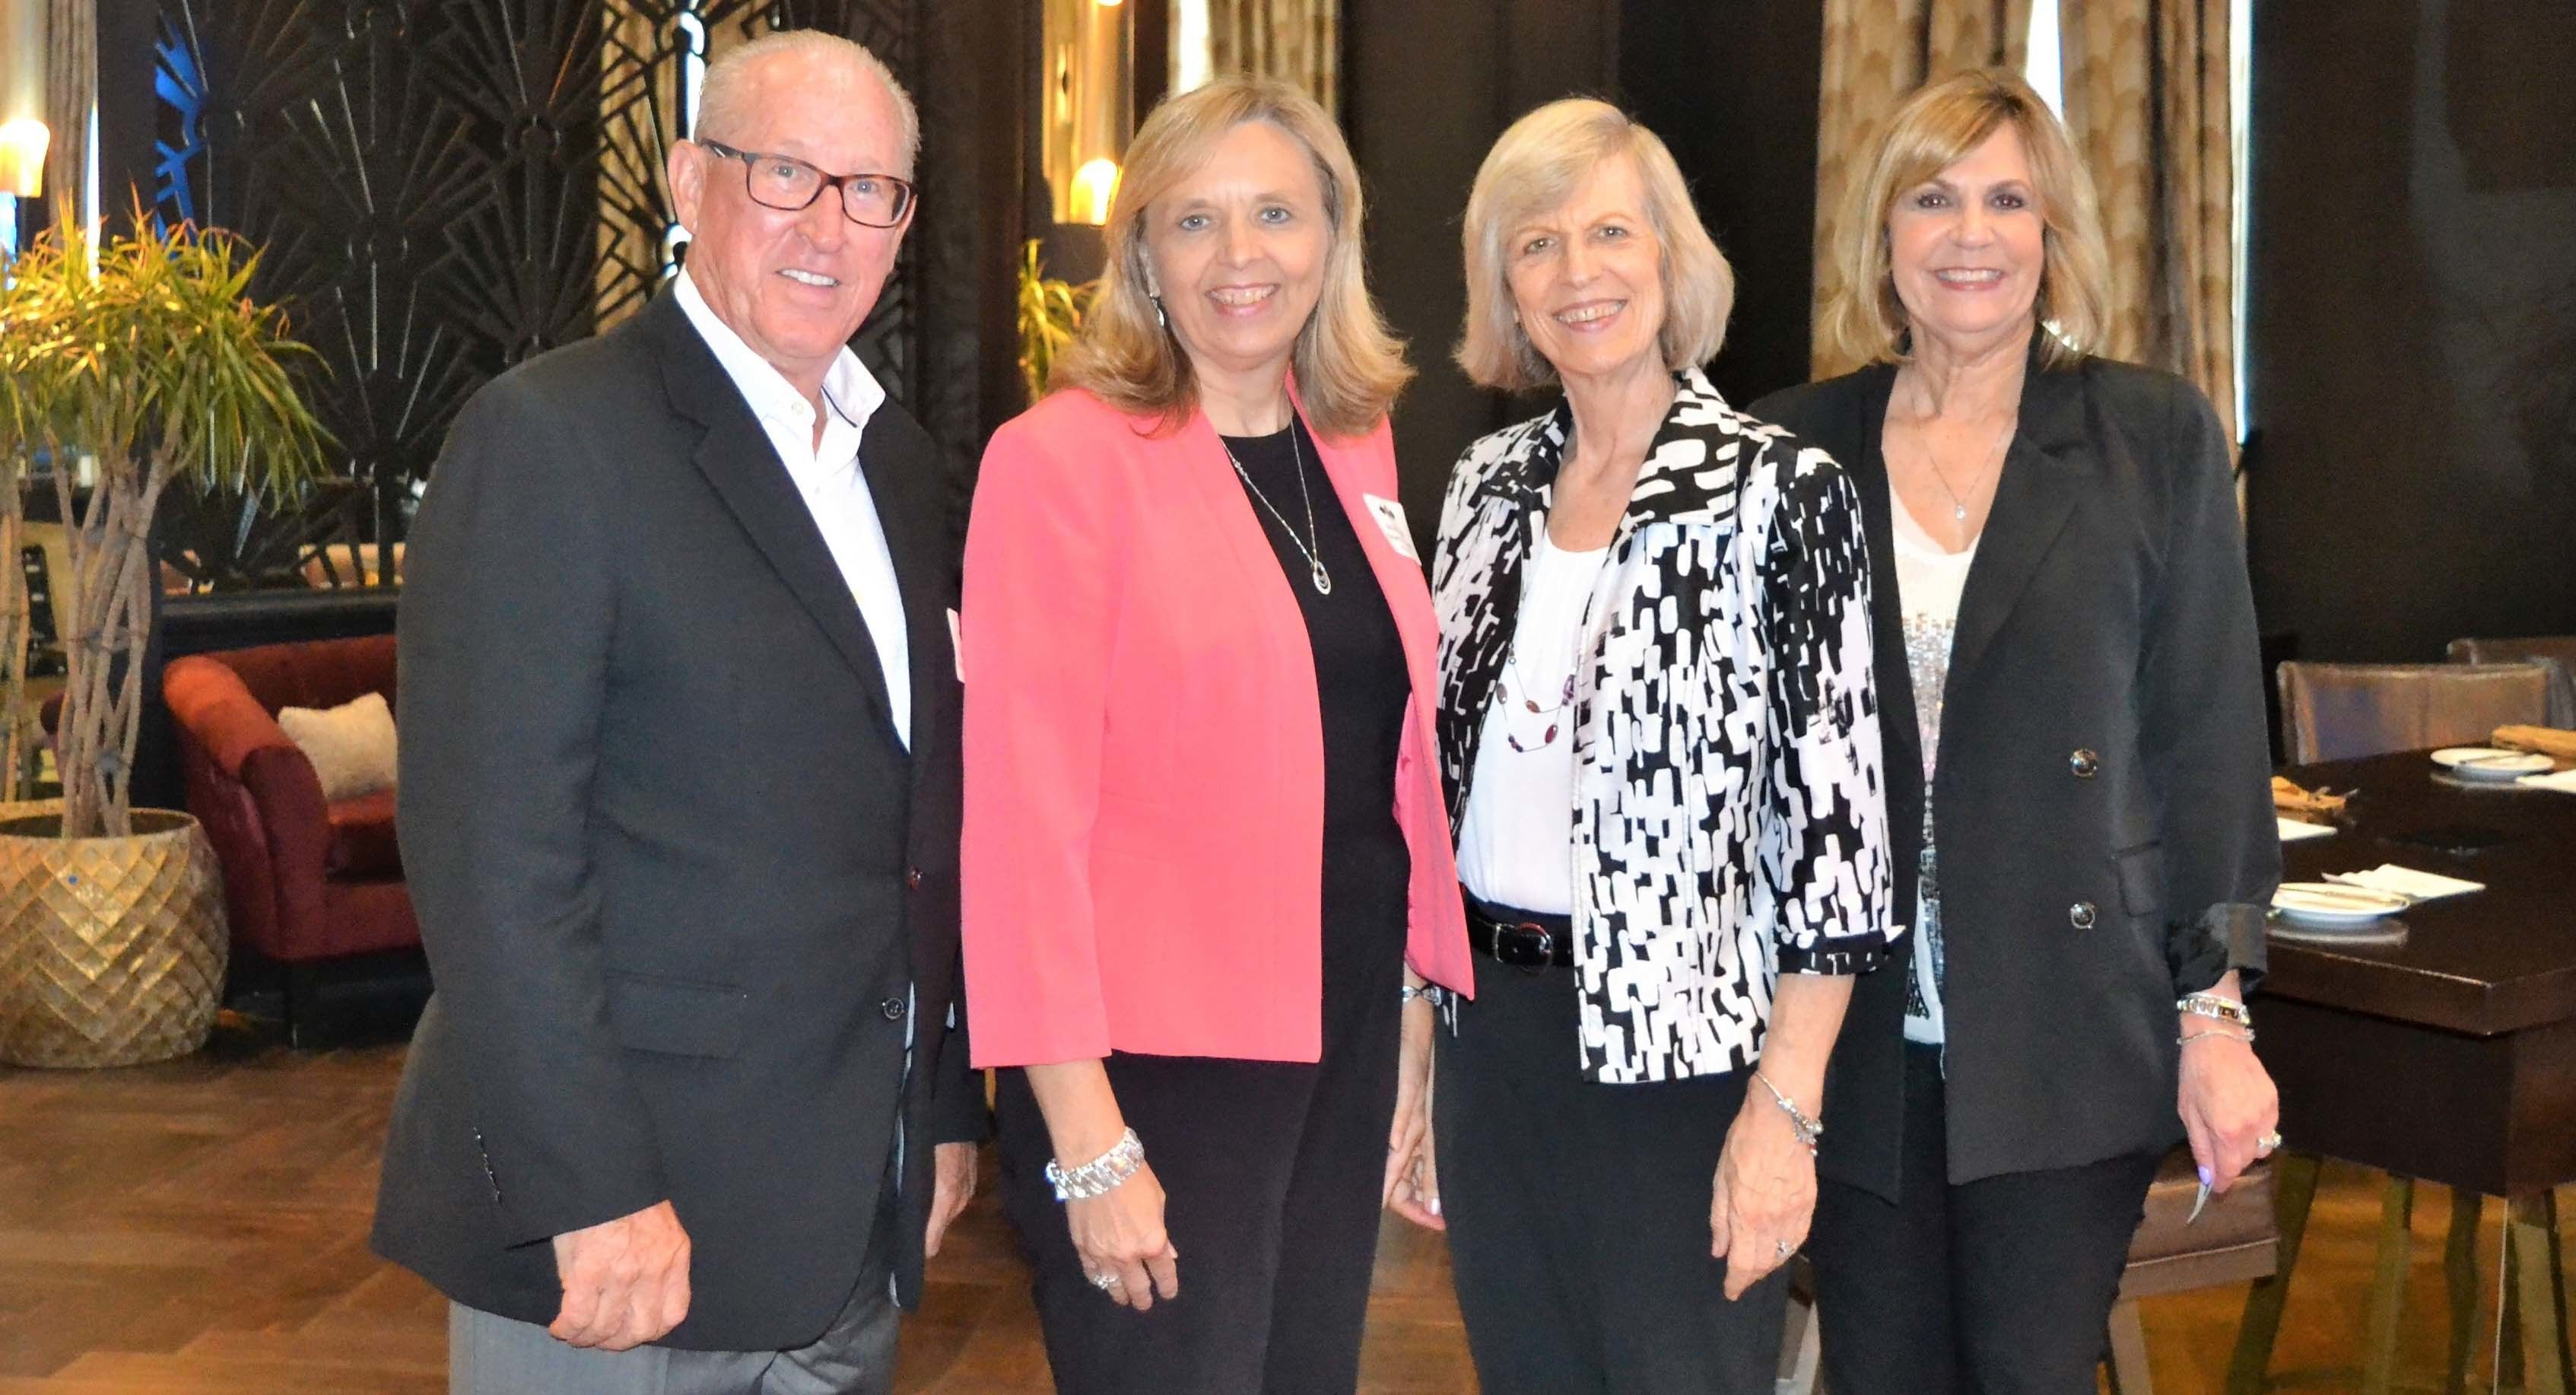 Enockson named a Key Leader by the Siouxland Chamber of Commerce